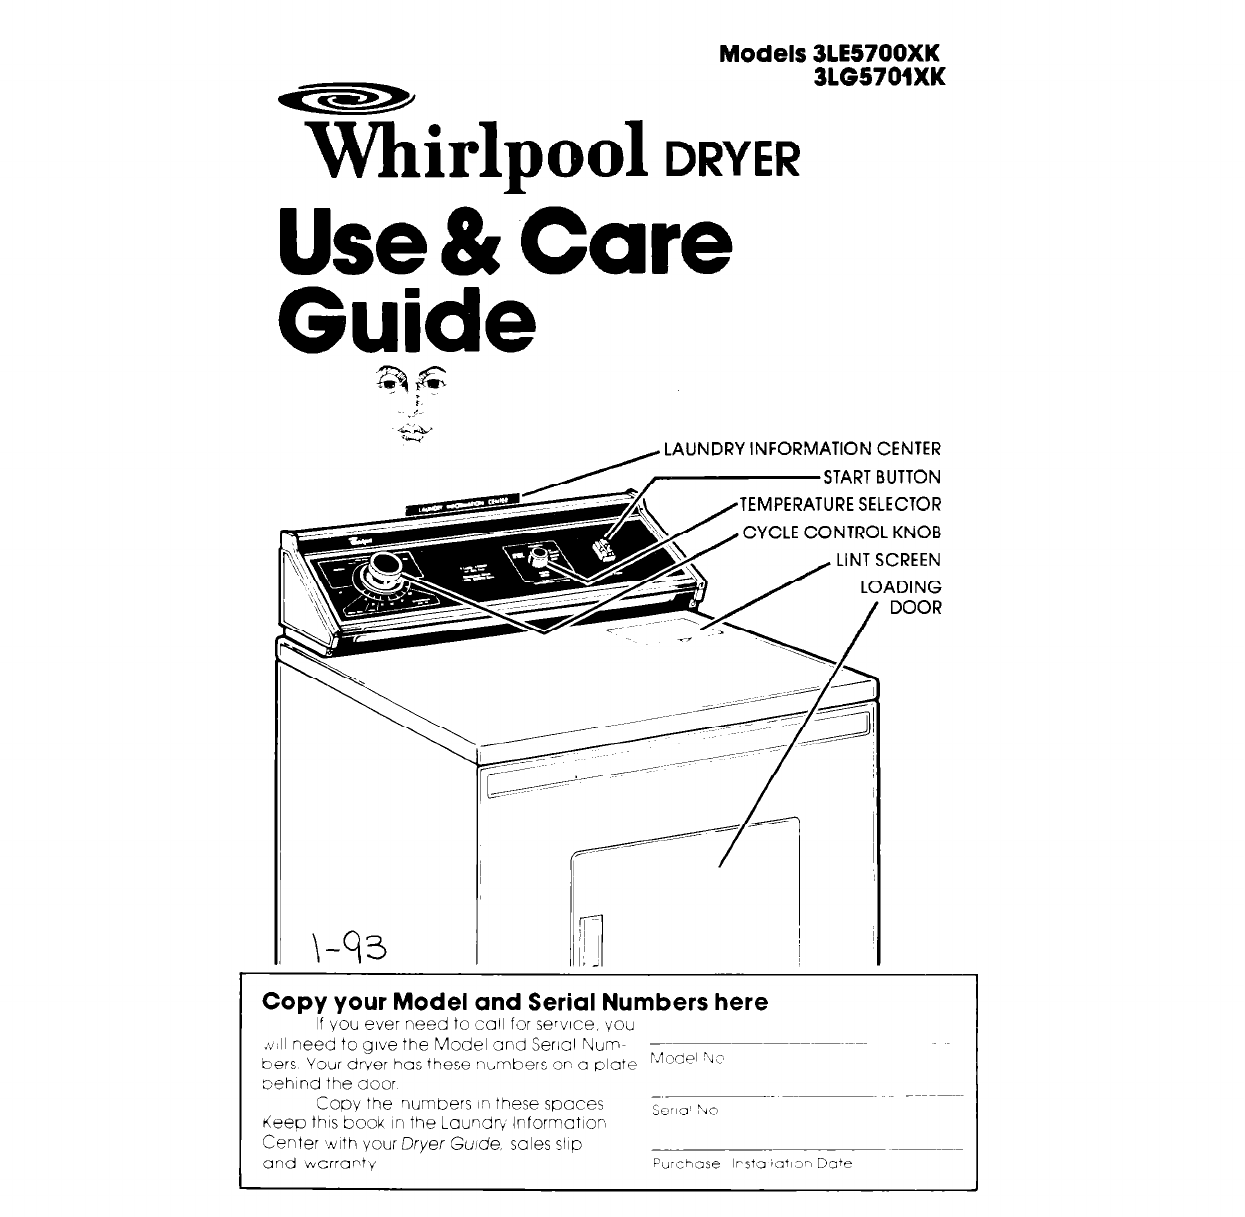 Whirlpool Clothes Dryer 3le5700xk User Guide border=